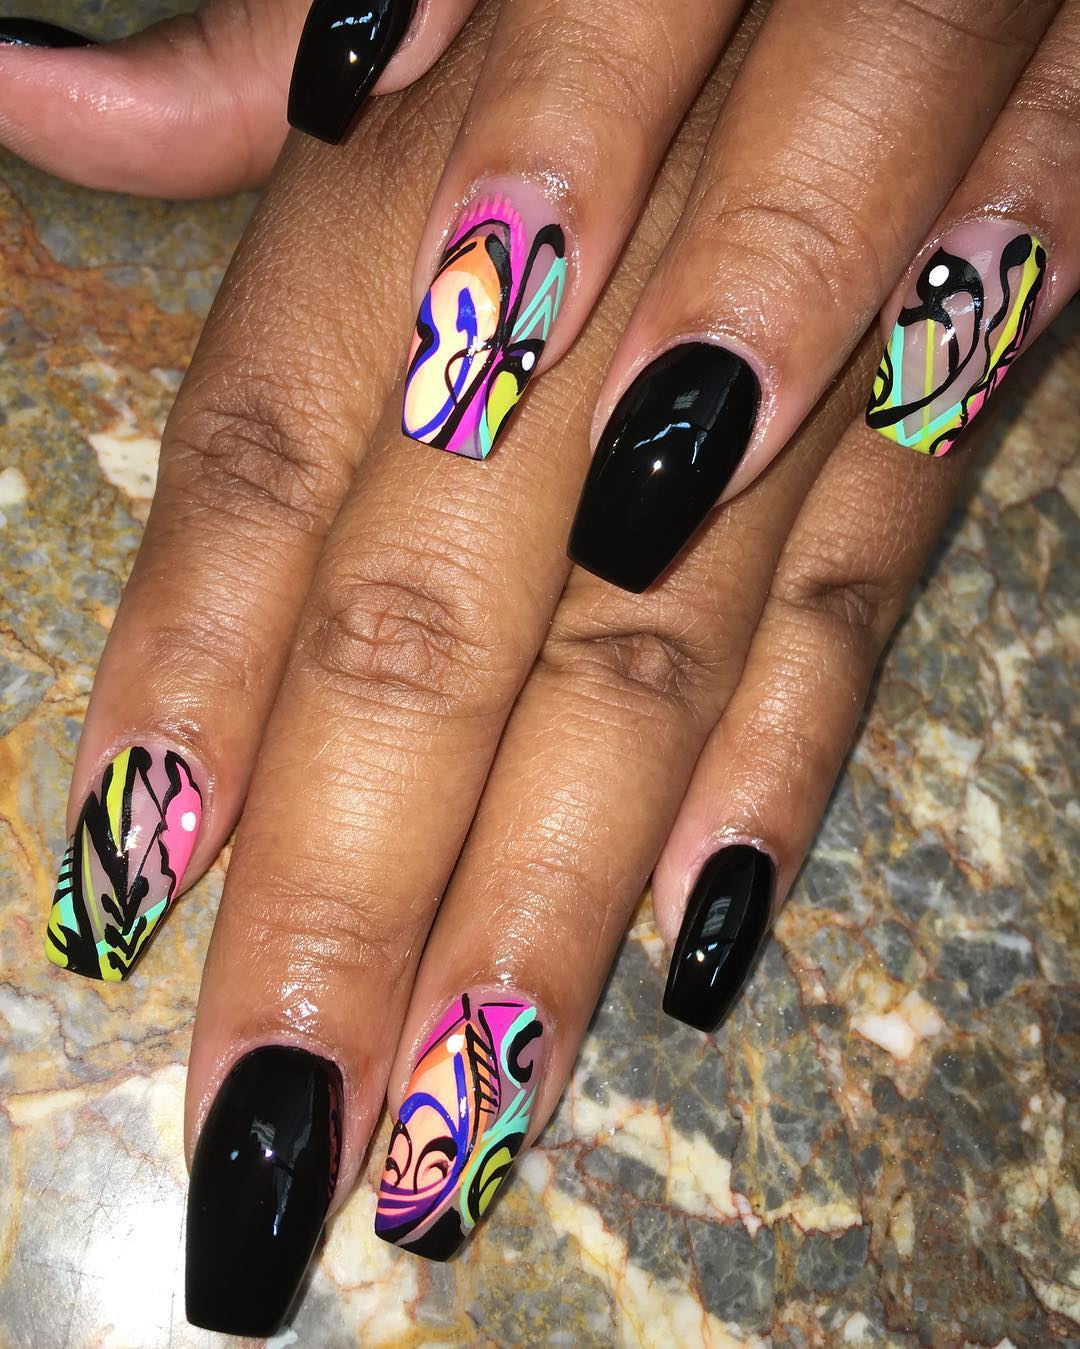 Nail Art Designs For Black Nails - NailArts Ideas